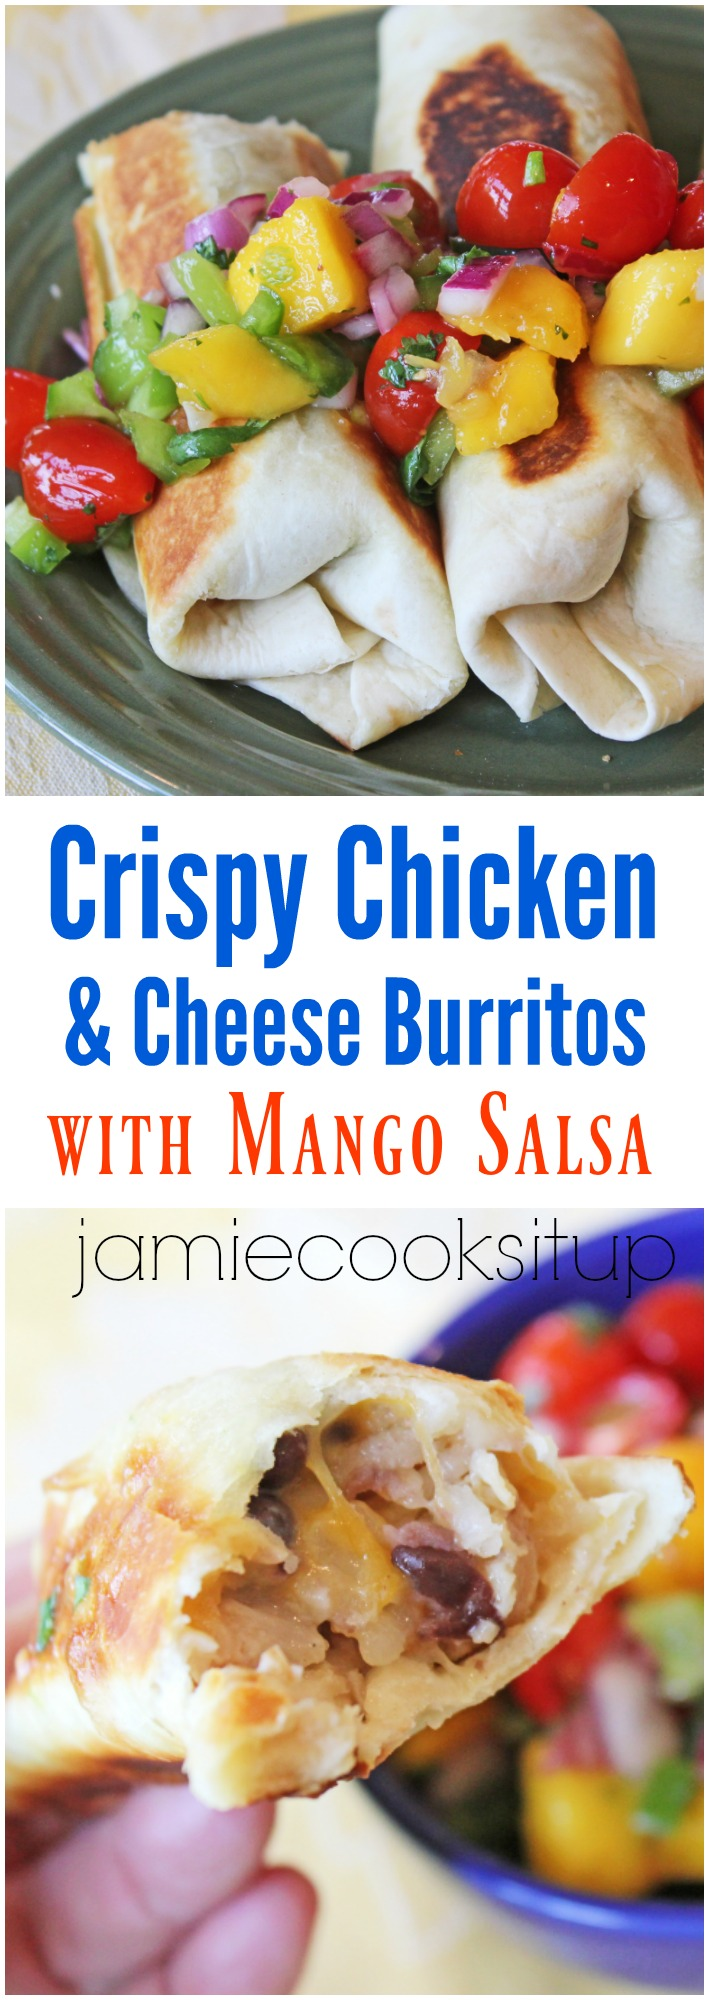 Crispy Chicken and Cheese Burritos with Mango Salsa from Jamie Cooks It Up!